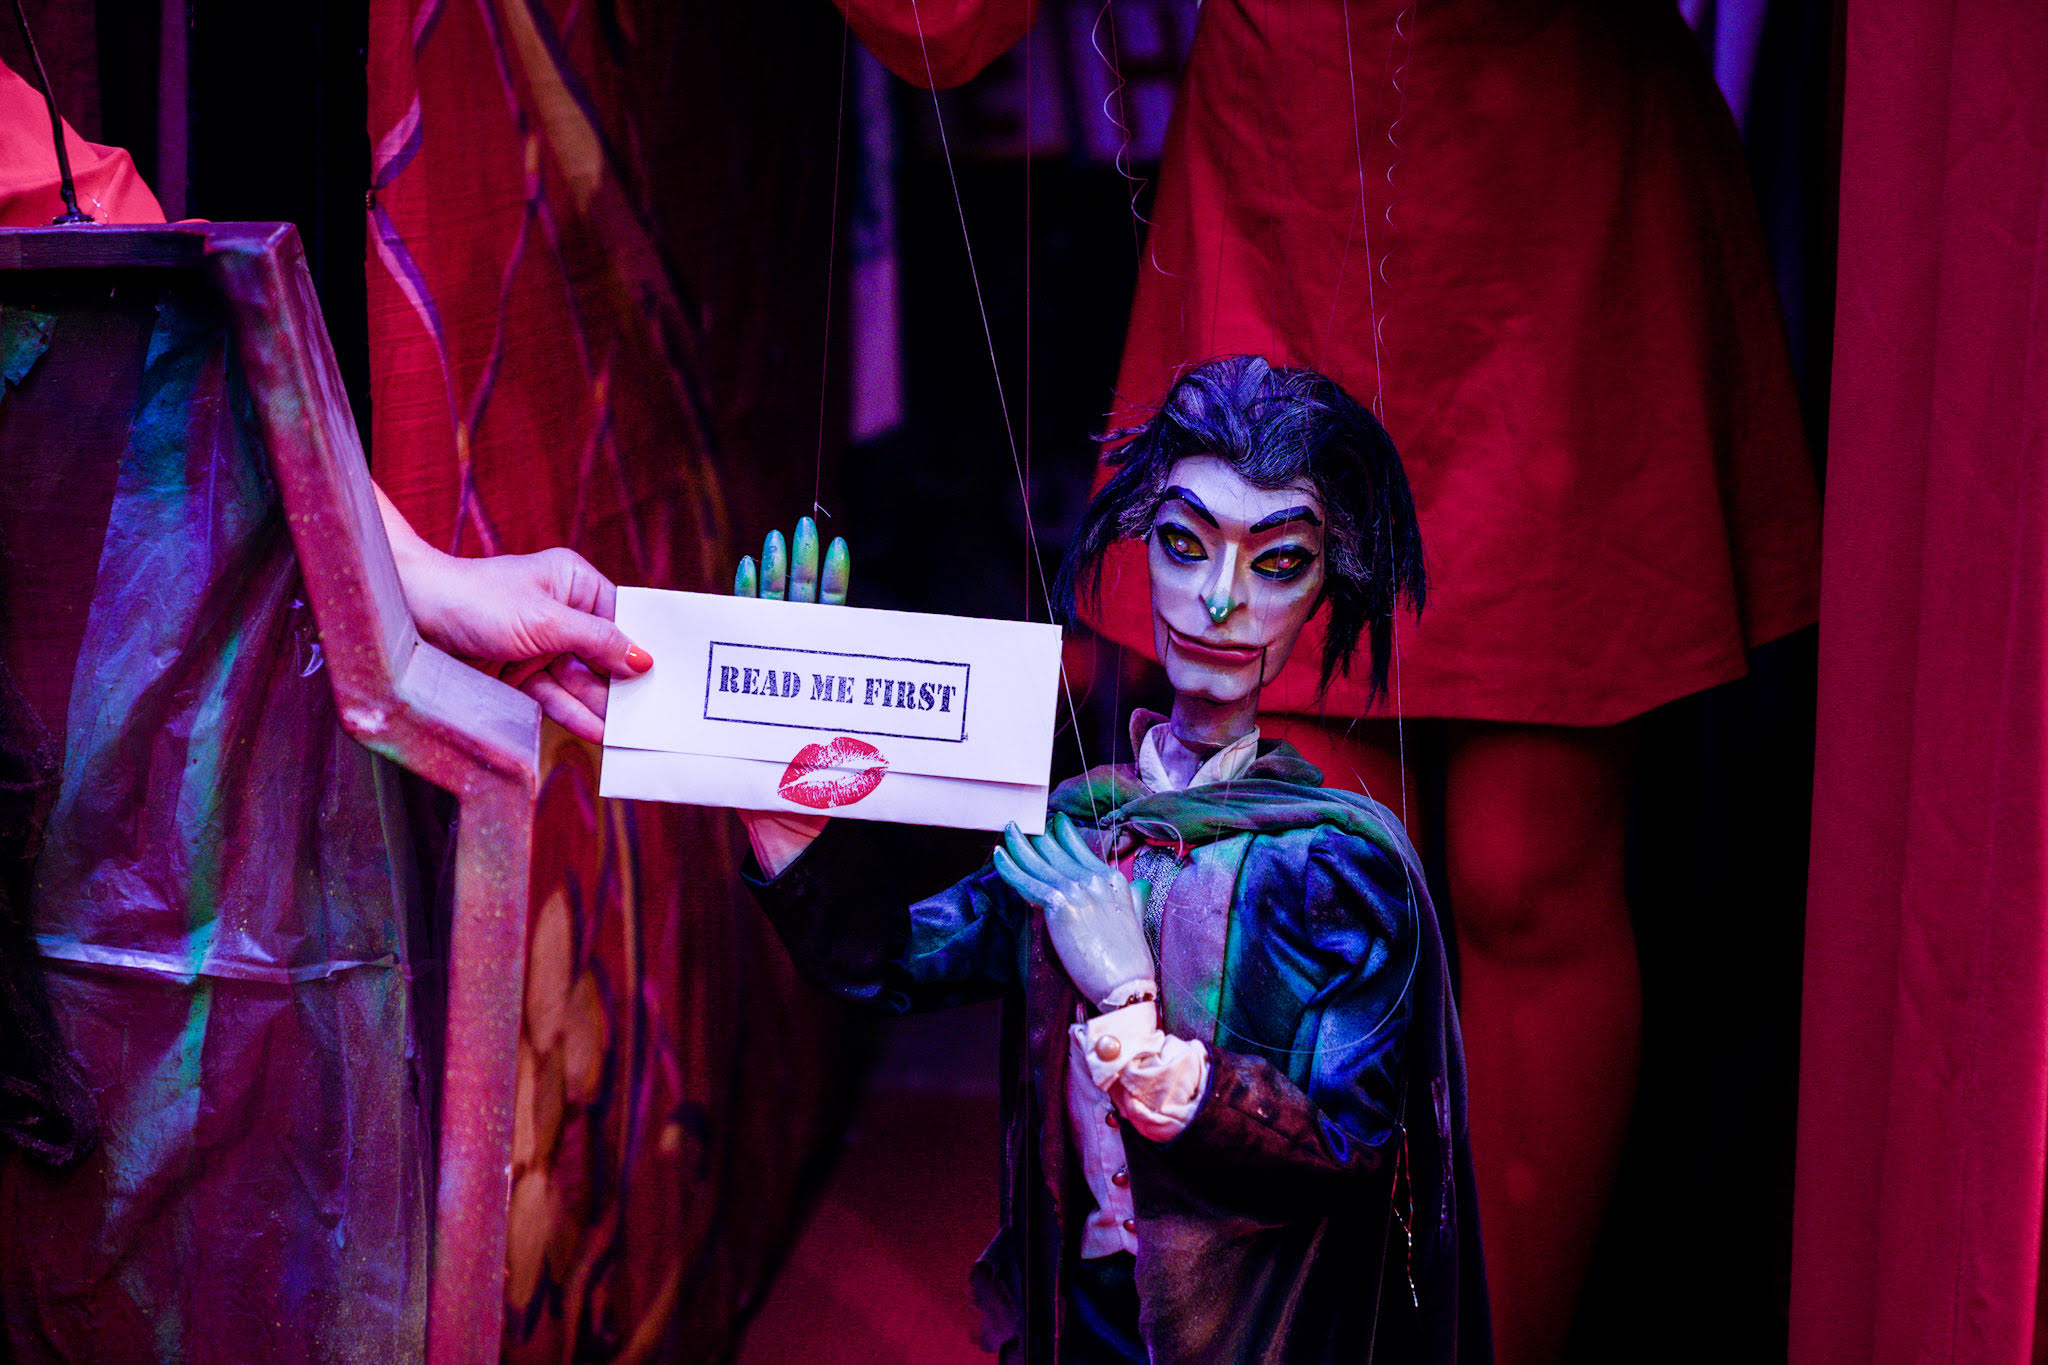 [News] Order an Evening of Disco, Puppets & Vampires to Your Front Door!